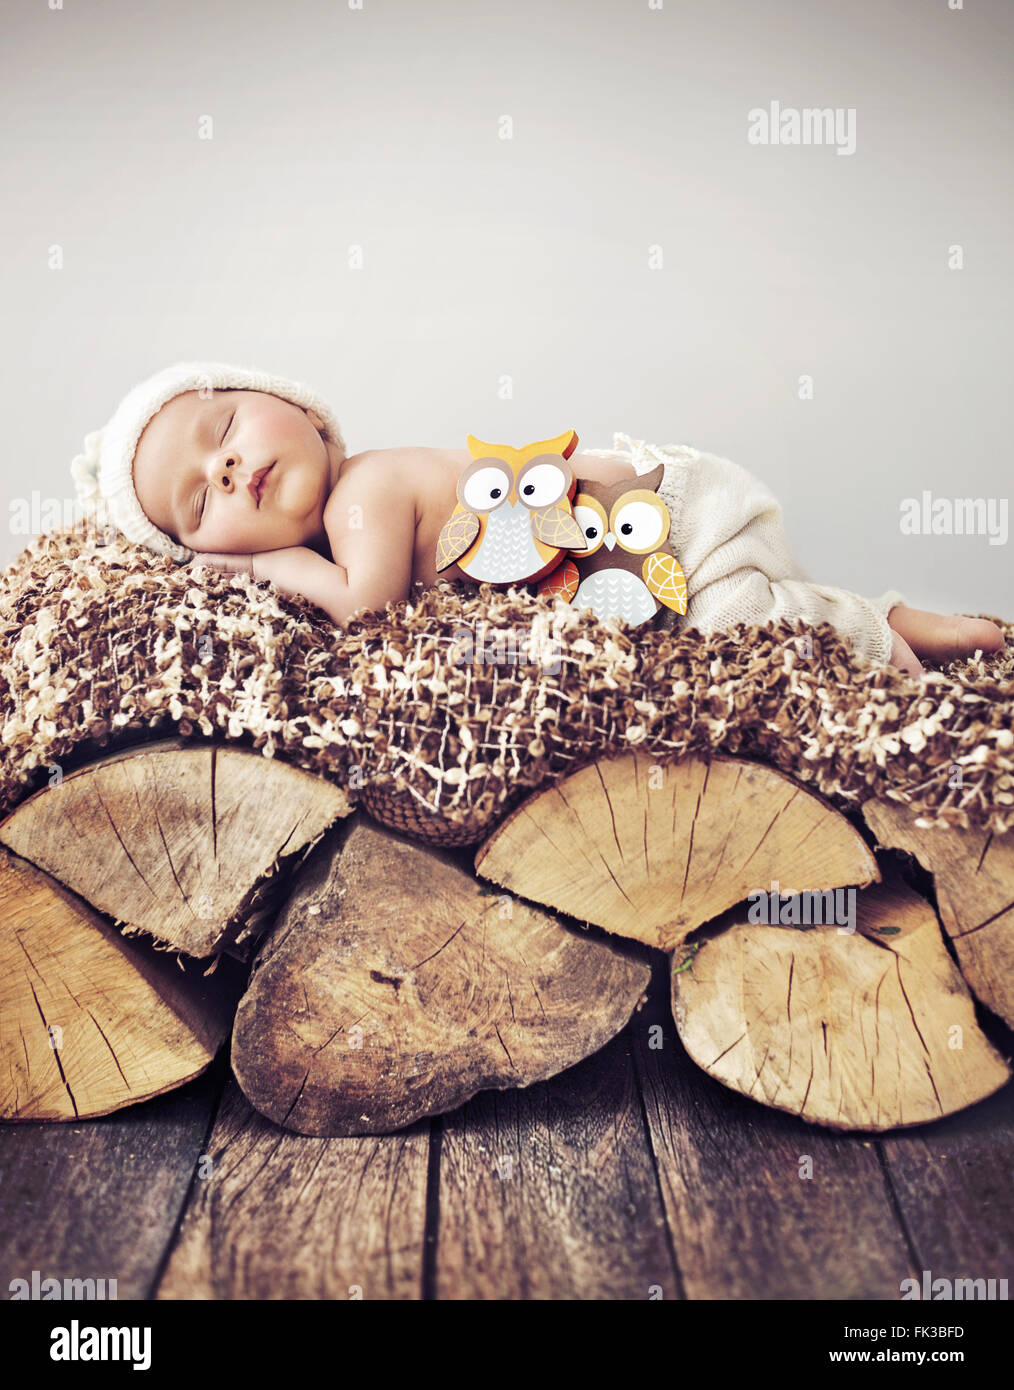 Portrait of a  toddler sleeping on wood - Stock Image